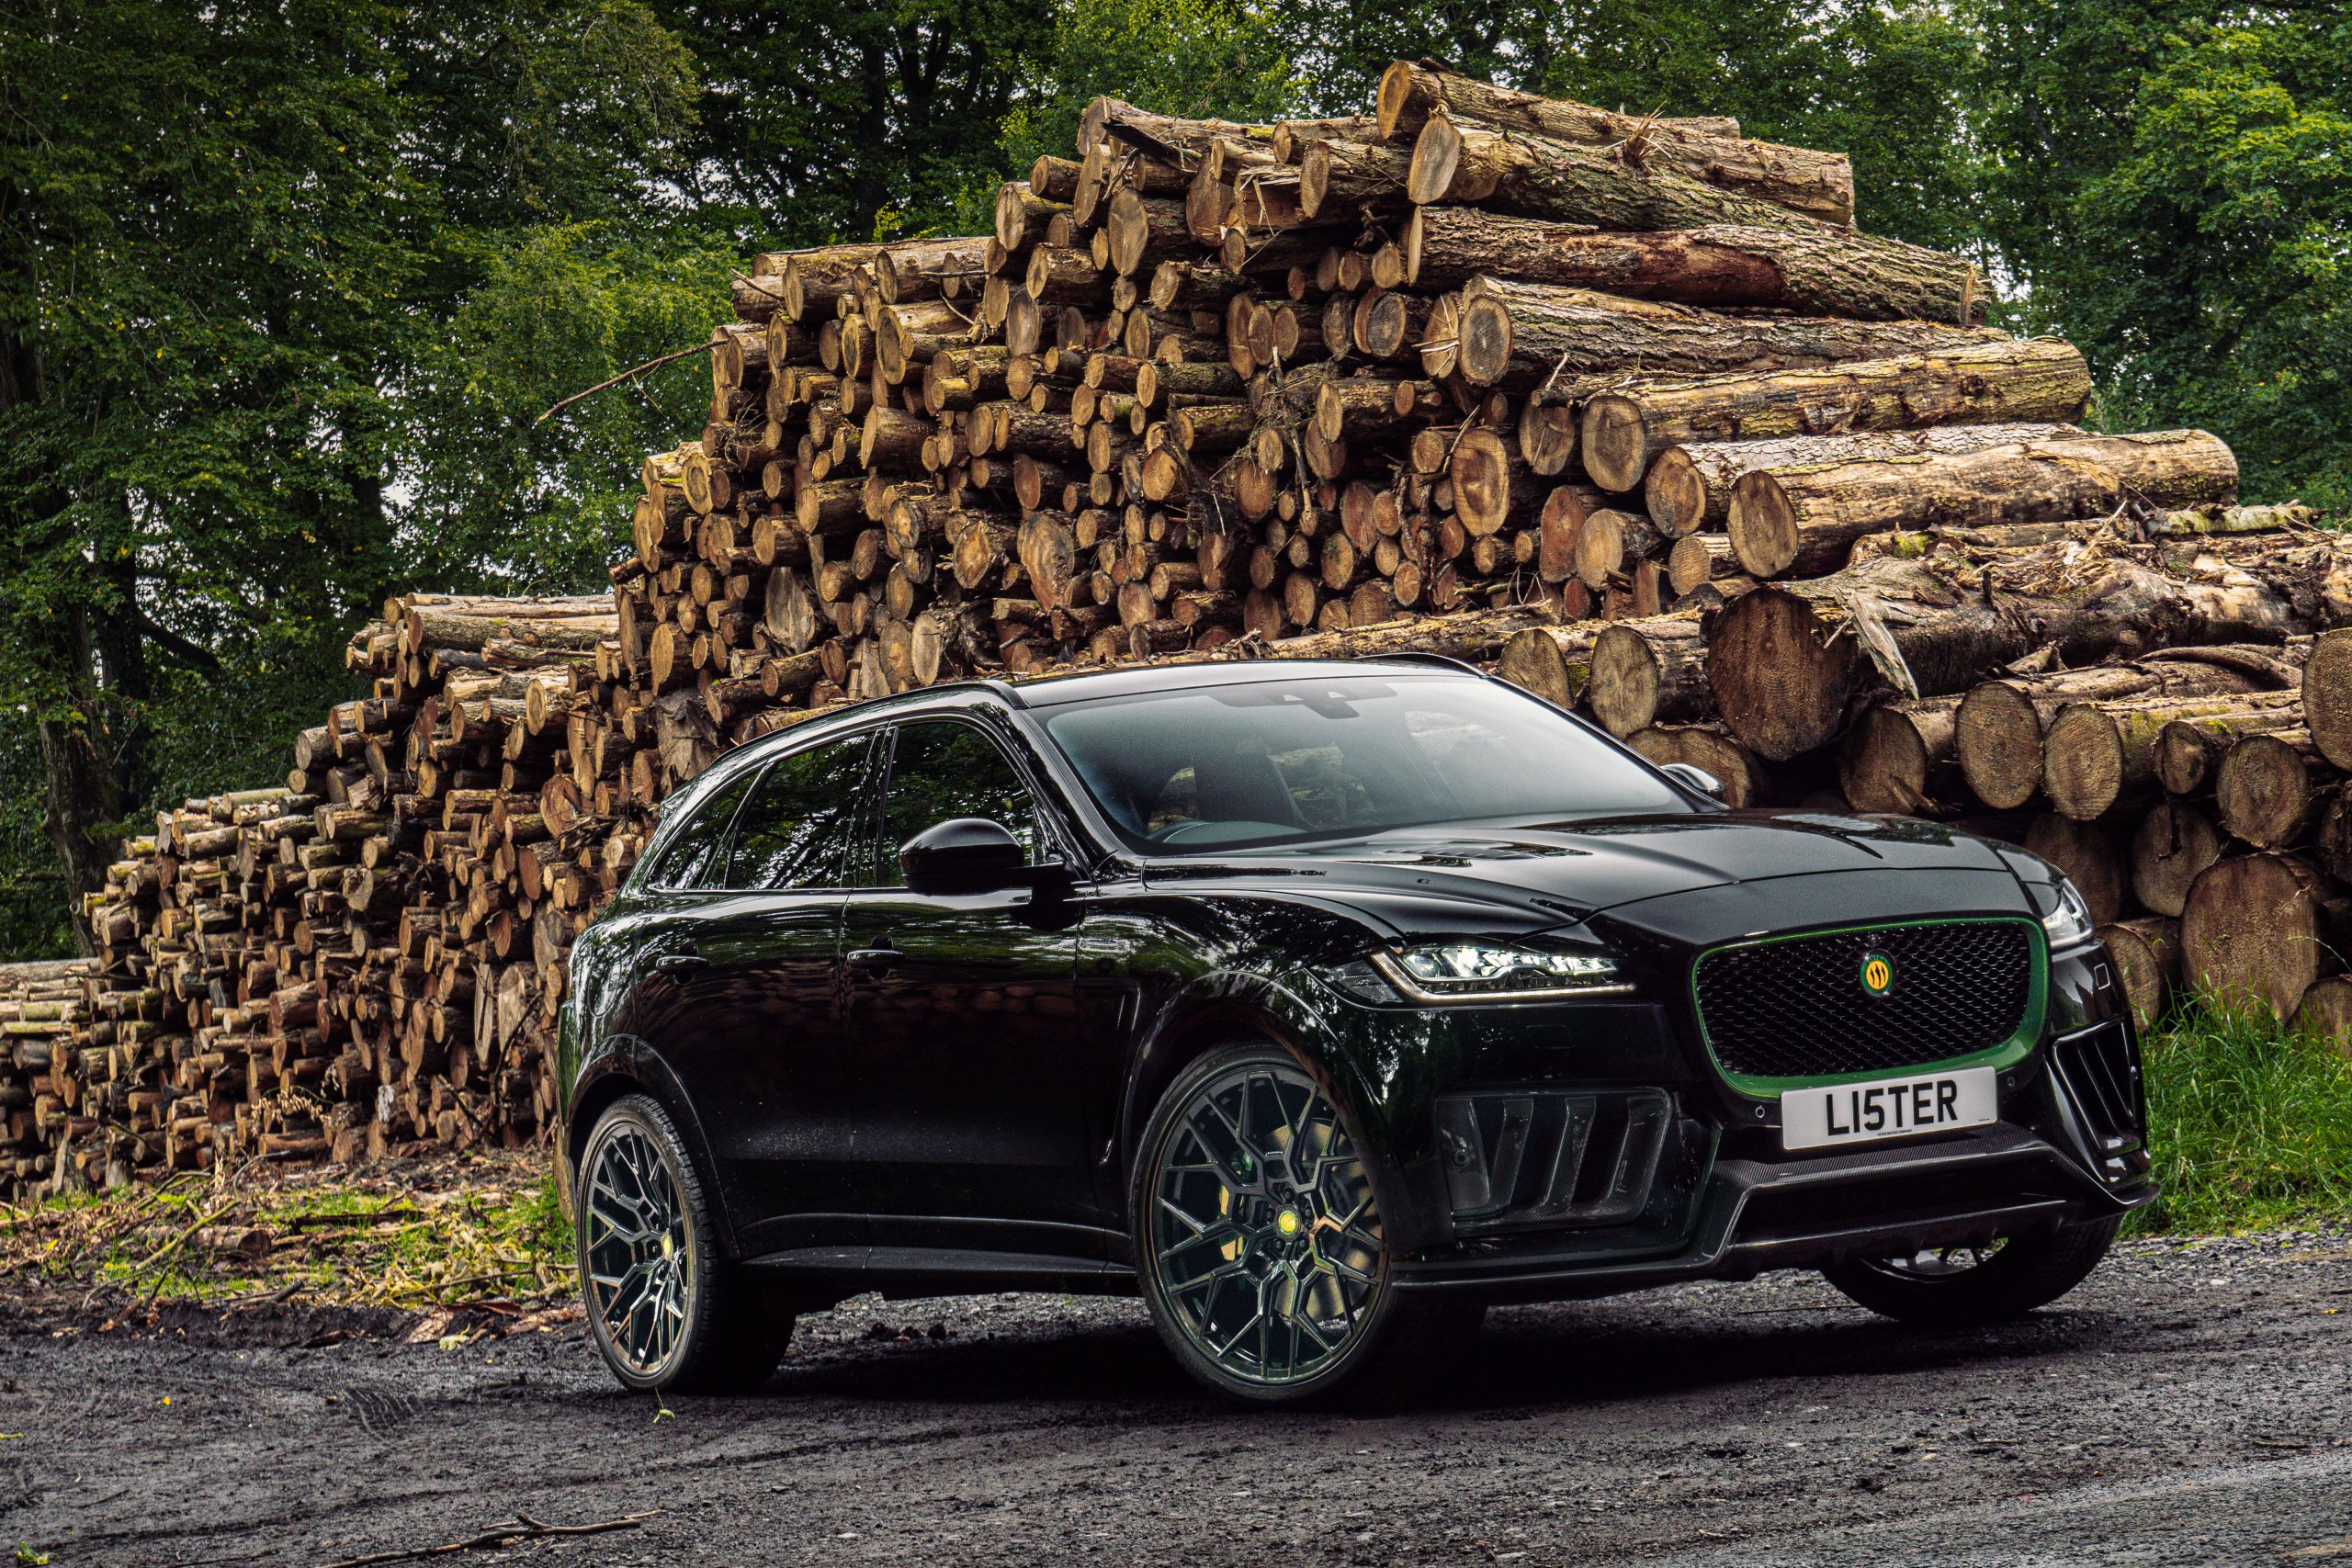 Lister claims the 195 mph Stealth is the world's fastest SUV